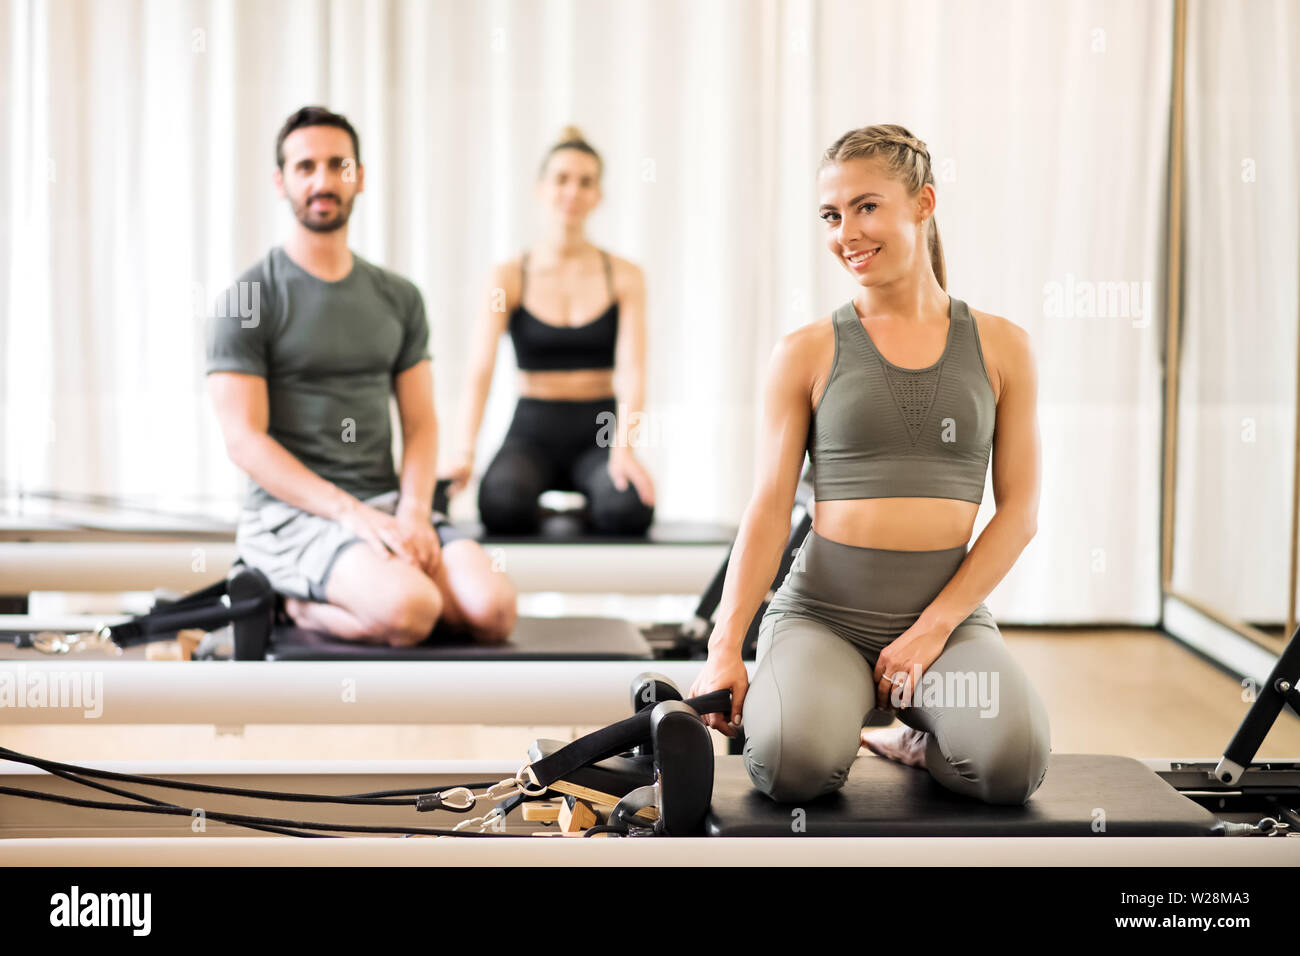 Three young athletes posing on pilates reformer beds at gym - Stock Image